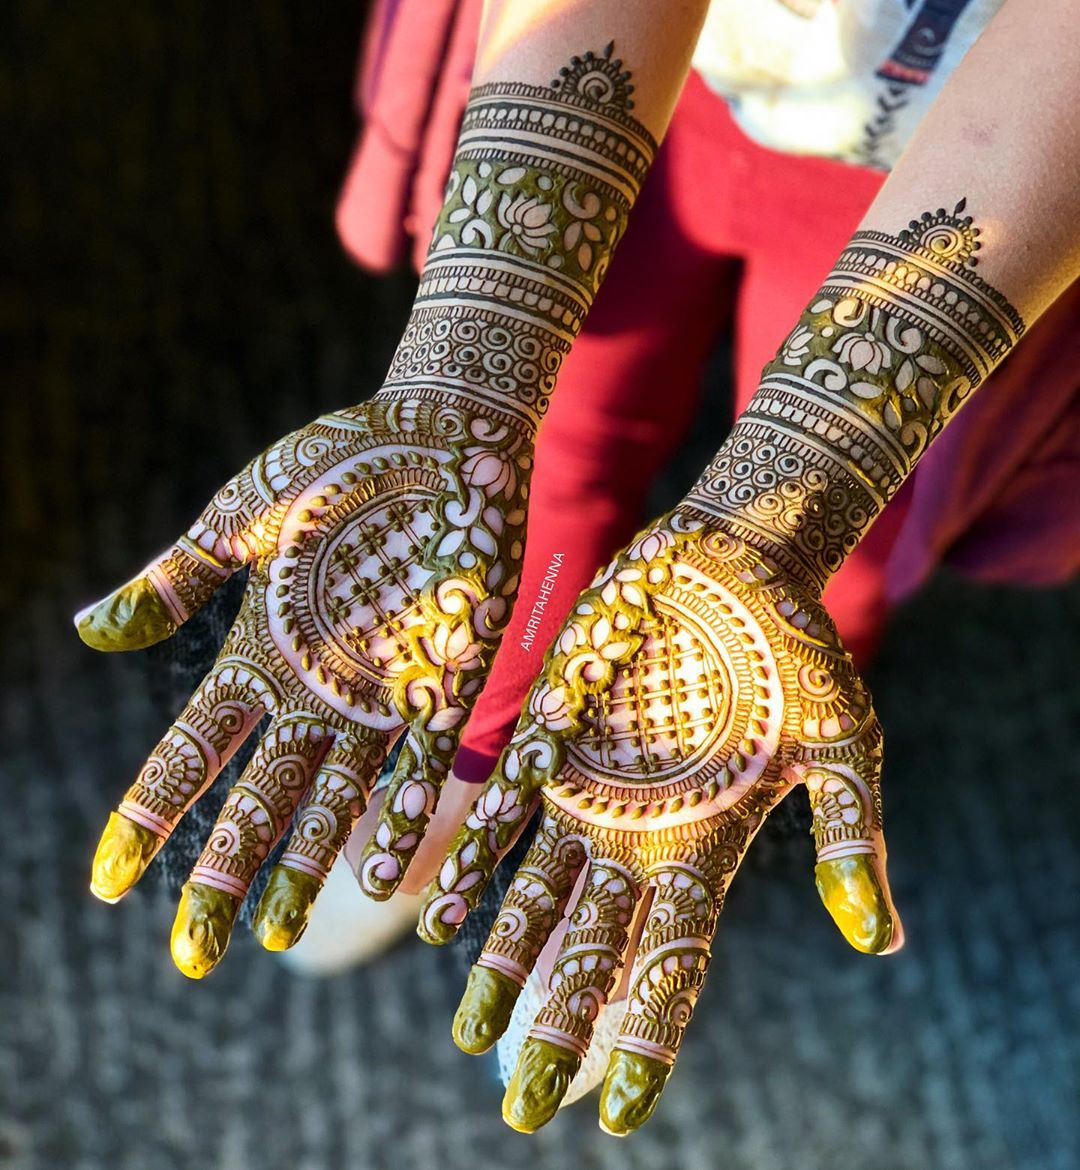 Amusing mirror Marwari style henna for amorous brides